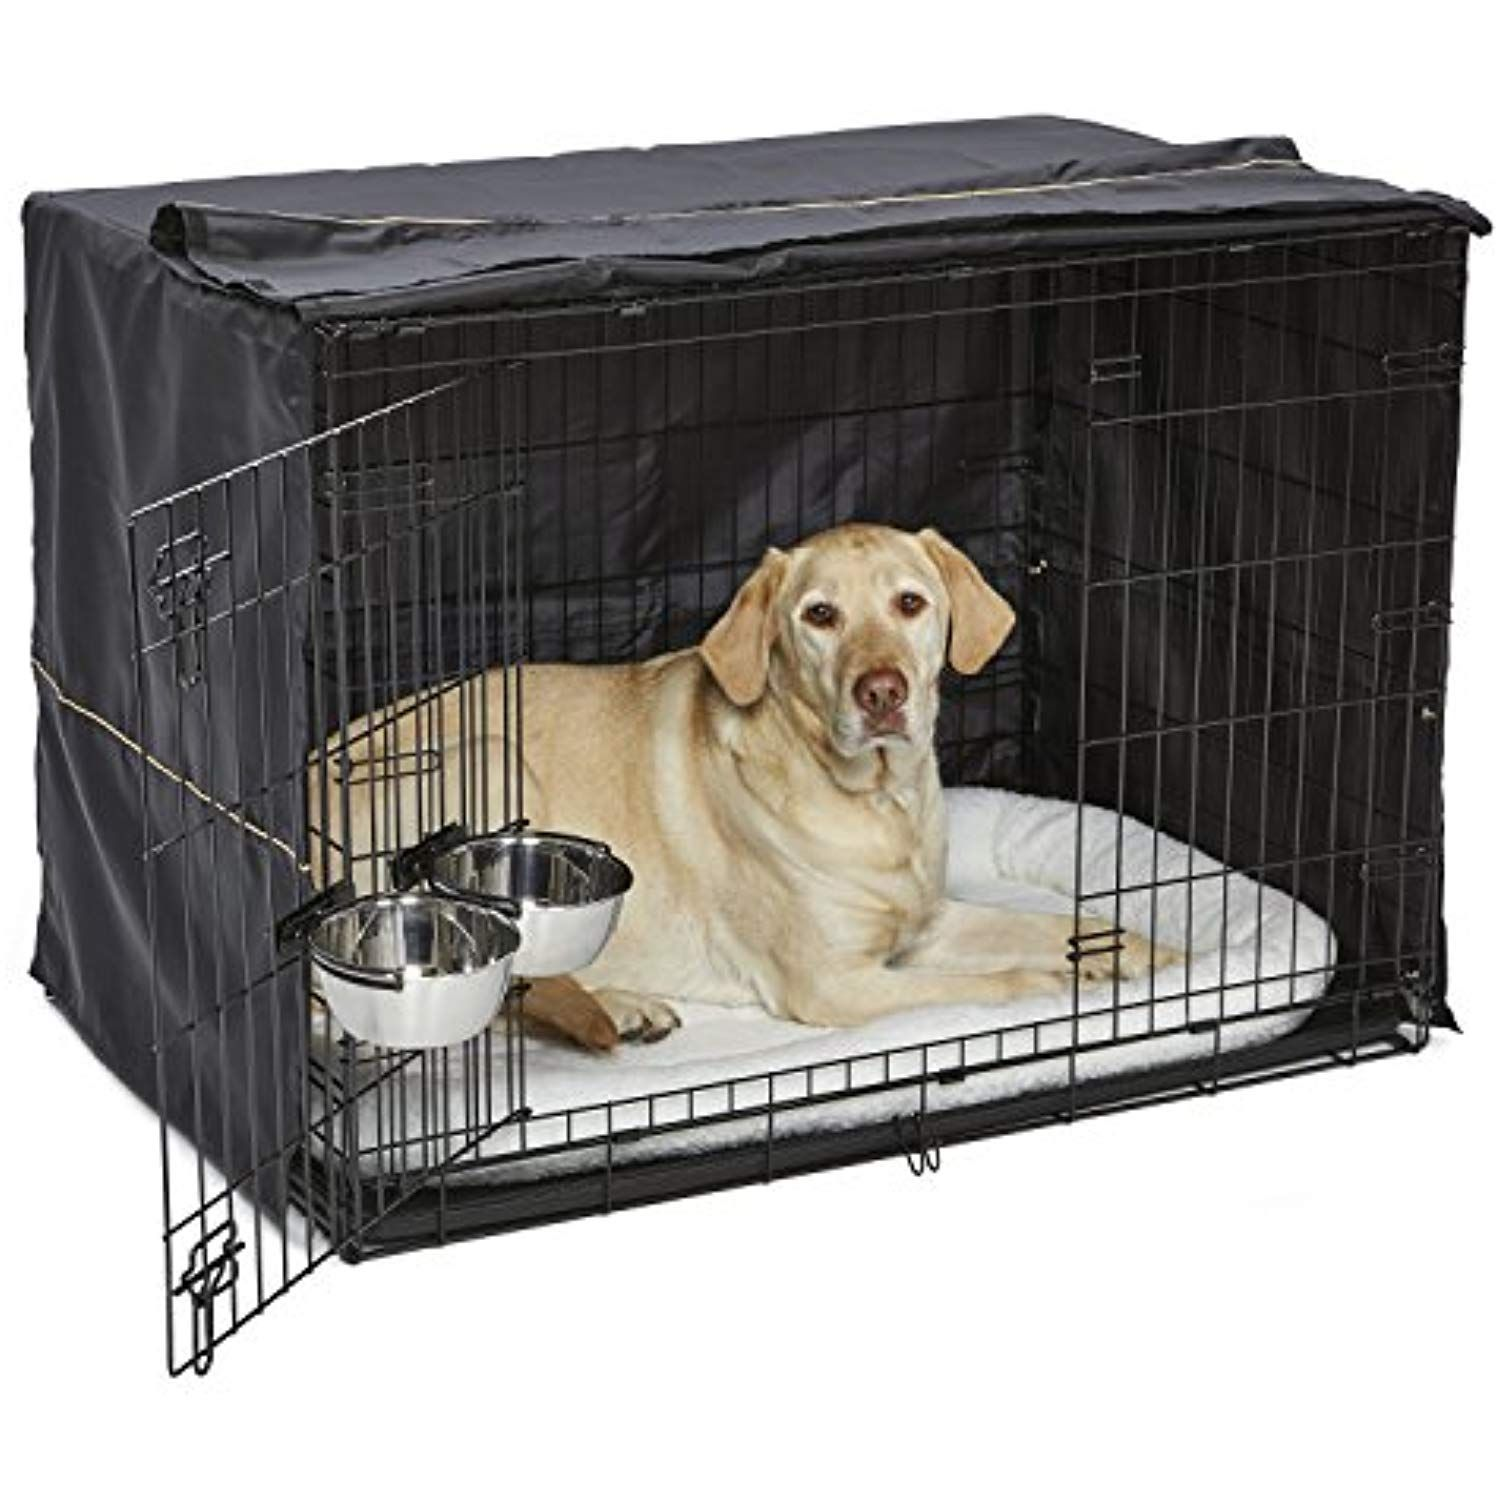 Midwest Homes For Pets Large Dog Crate Starter Kit One 2 Door Icrate Pet Bed Crate Cover And 2 Pet Bowls Large Dog Breeds Dog Crate Cover Large Dog Crate